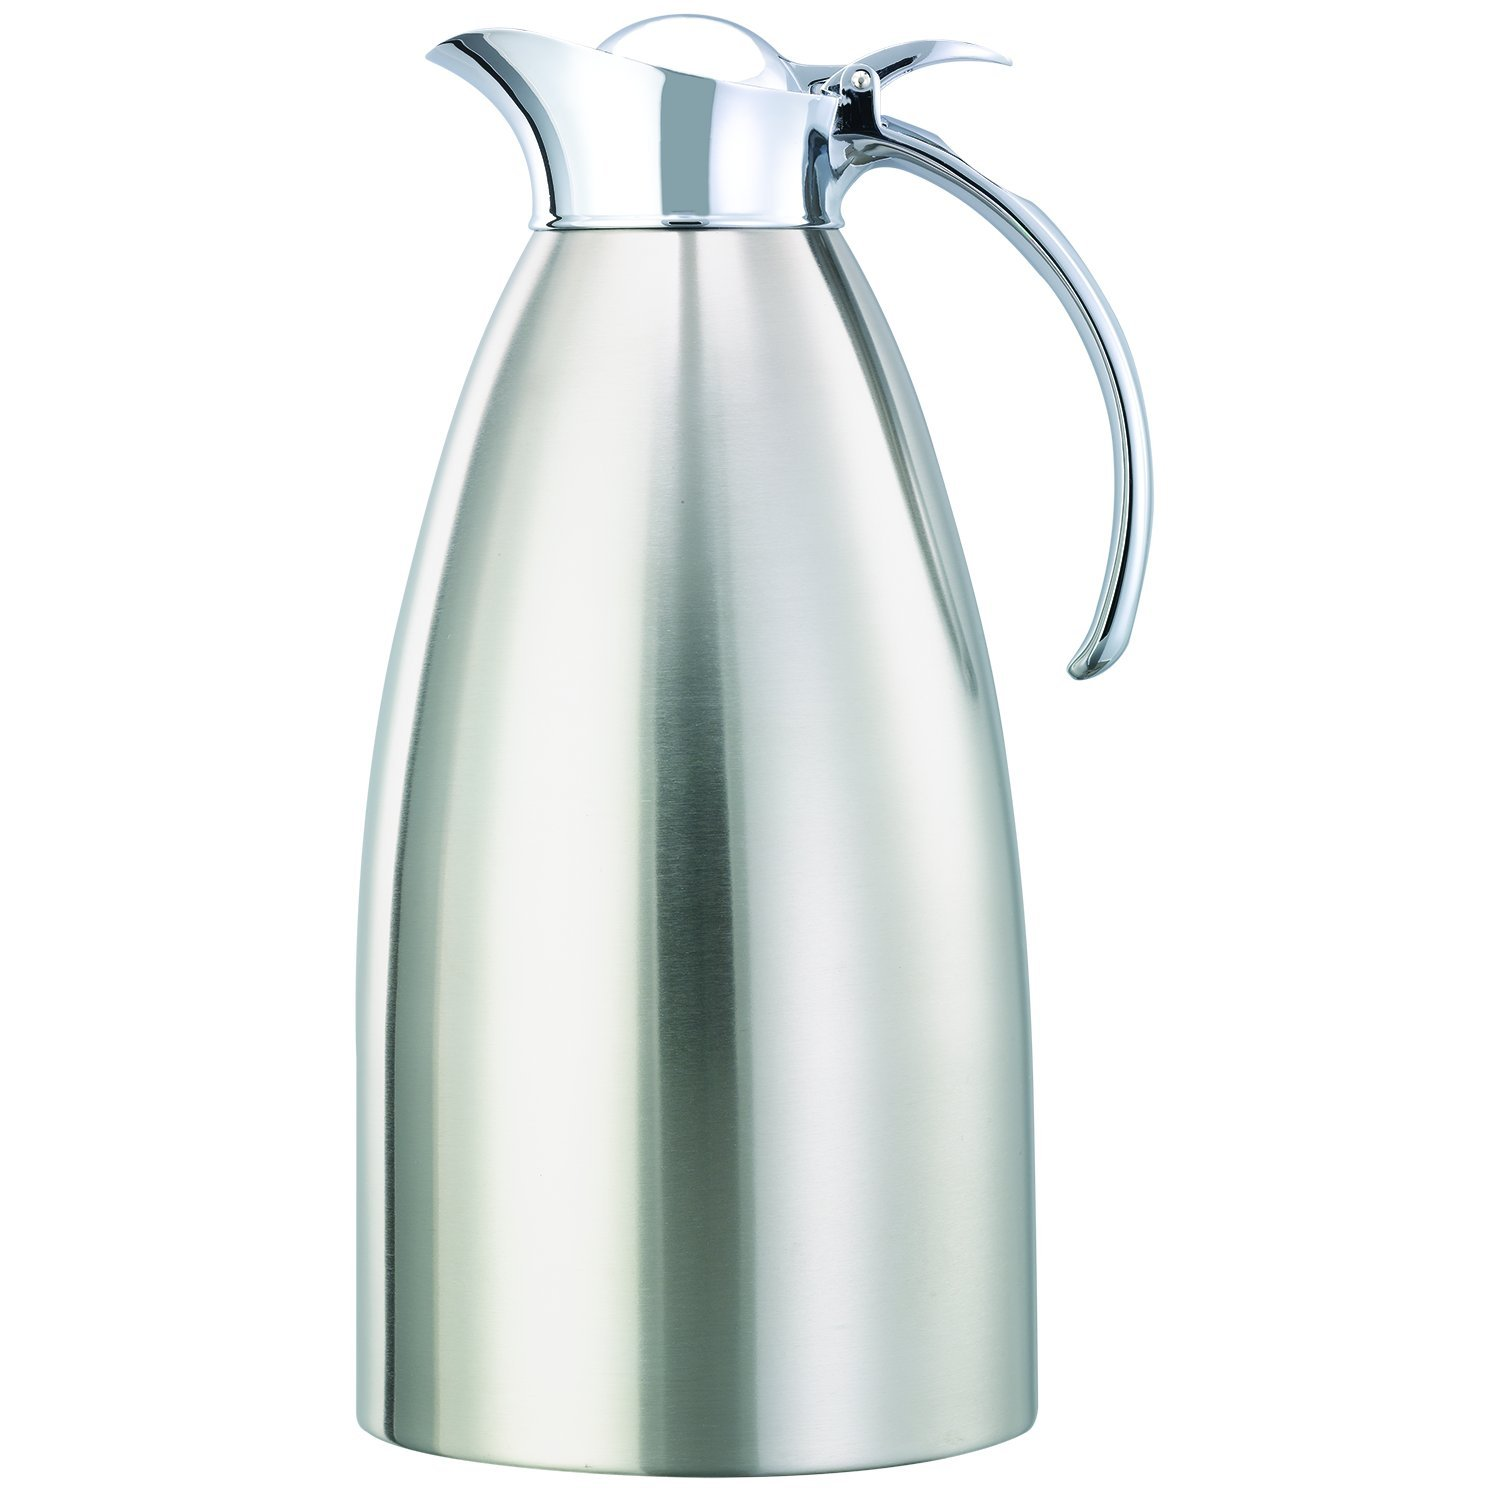 Service Ideas 982C20BS Carafe, Stainless Steel Lined, Brushed Exterior, 2 L